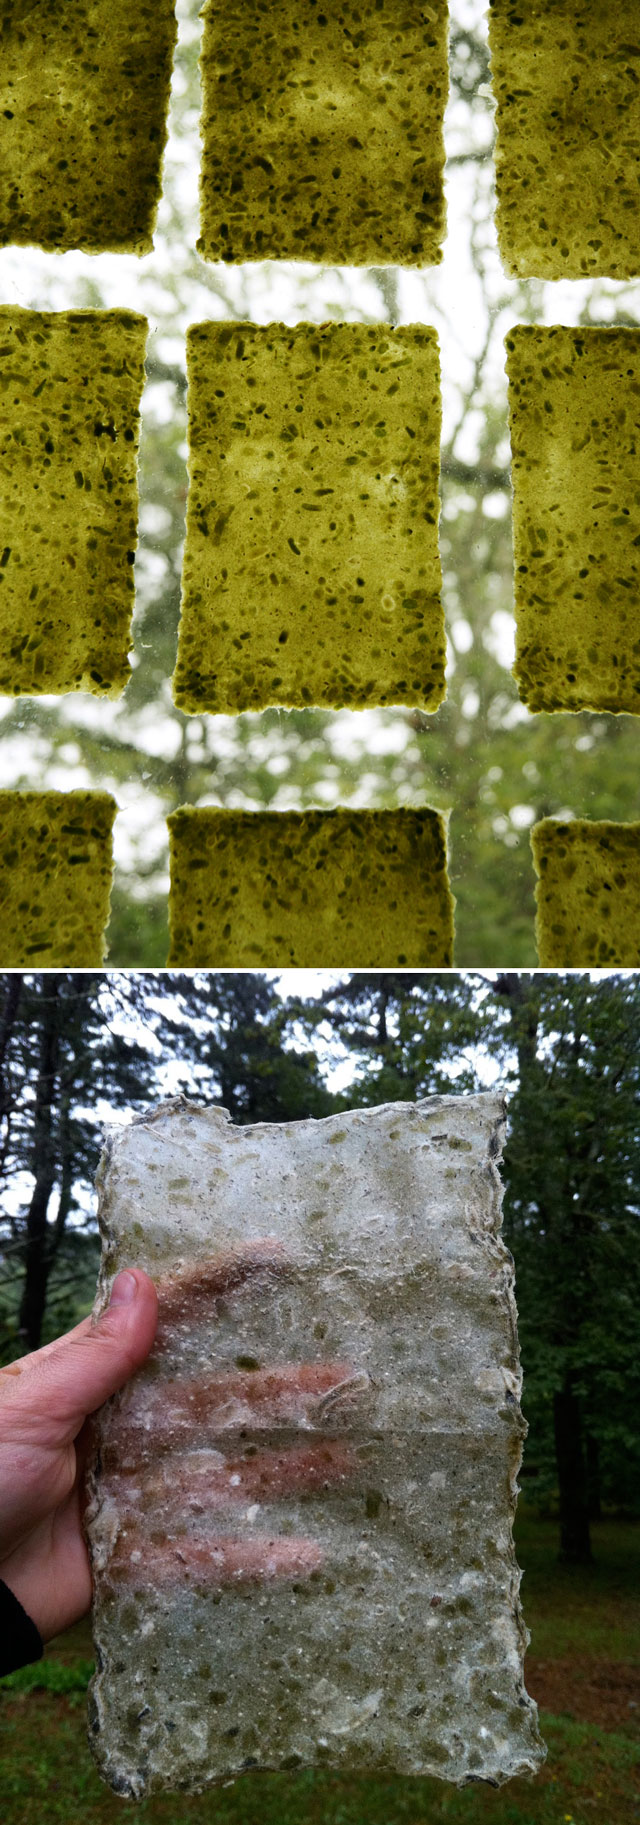 Making Paper From Seaweed Papermaking With Atlantic Bioinvader